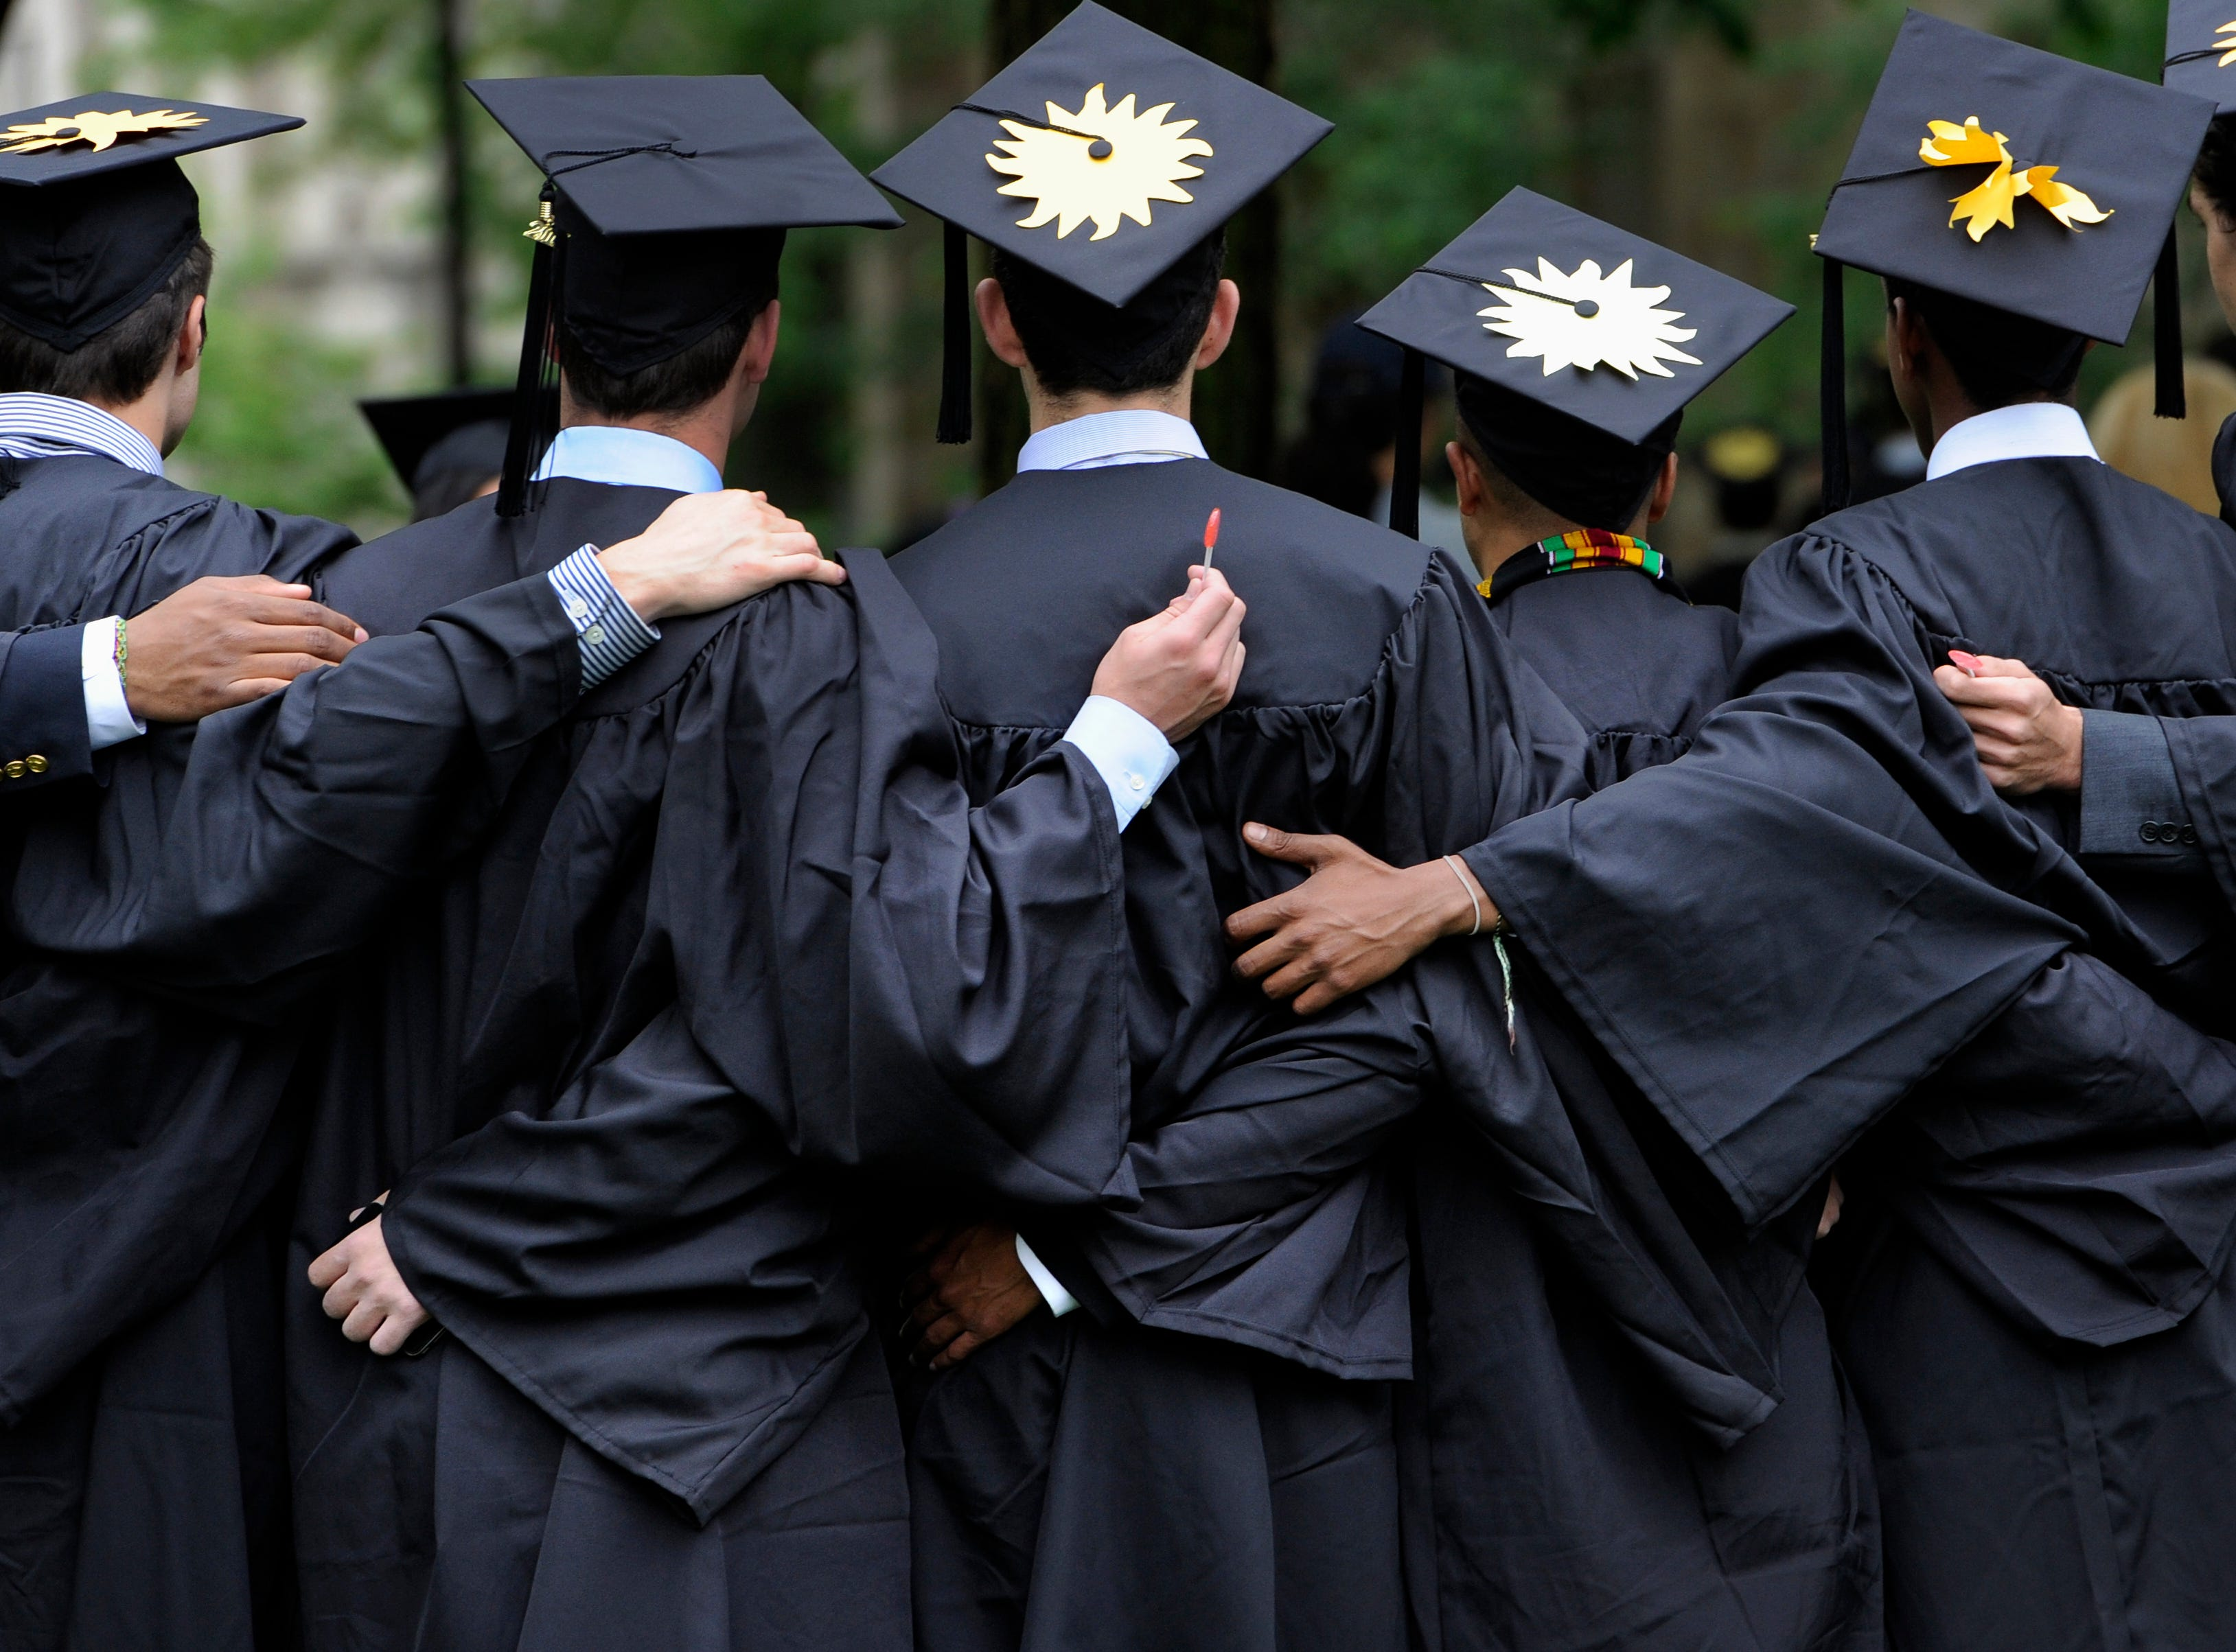 Study: Medicaid expansion popular among college graduates. Does education foster empathy?